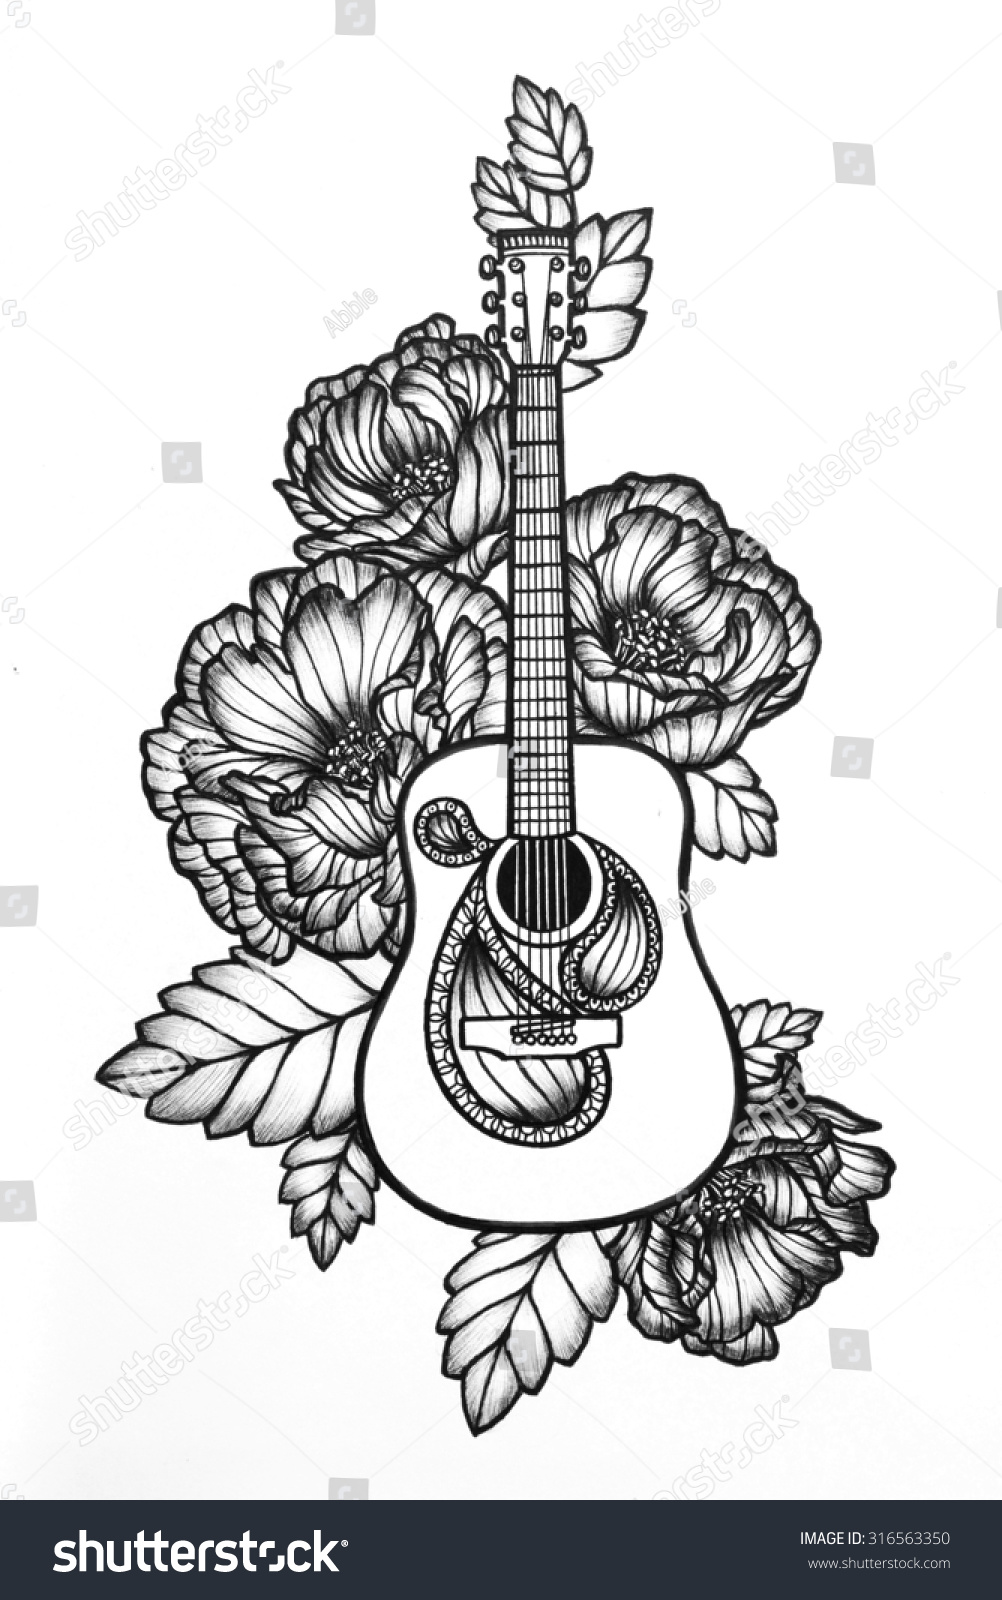 Guitar With Roses Hand Drawn Acoustic Art Design Concert Poster Or Band Website